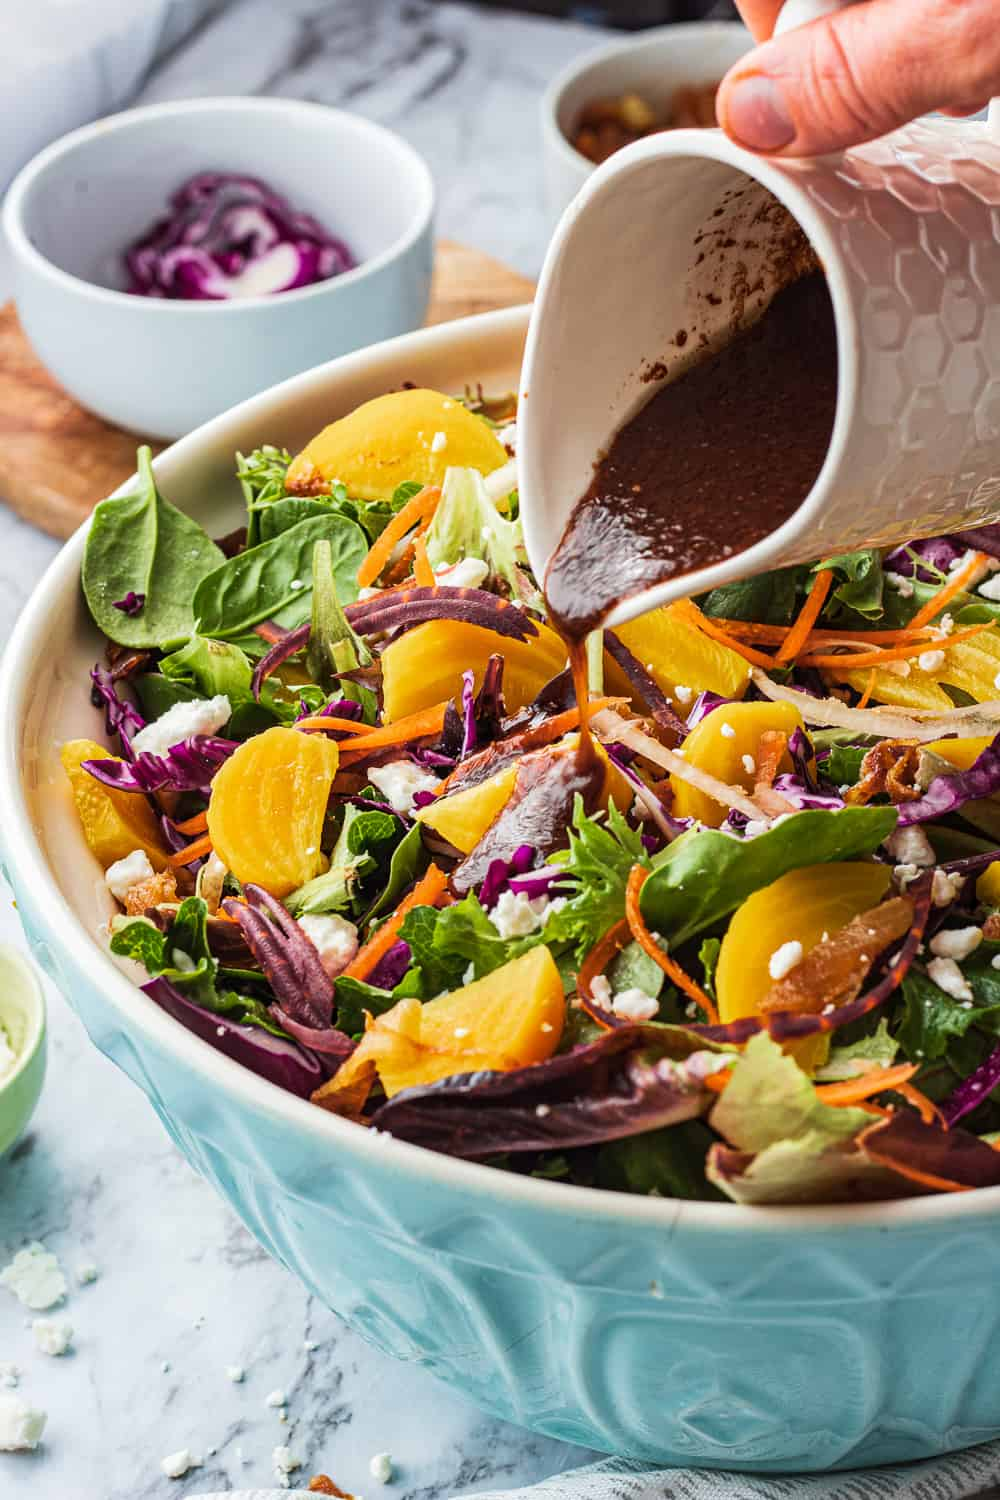 gold beets, red cabbage and carrots in a blue bowl with balsamic miso dressing pouring over salad.